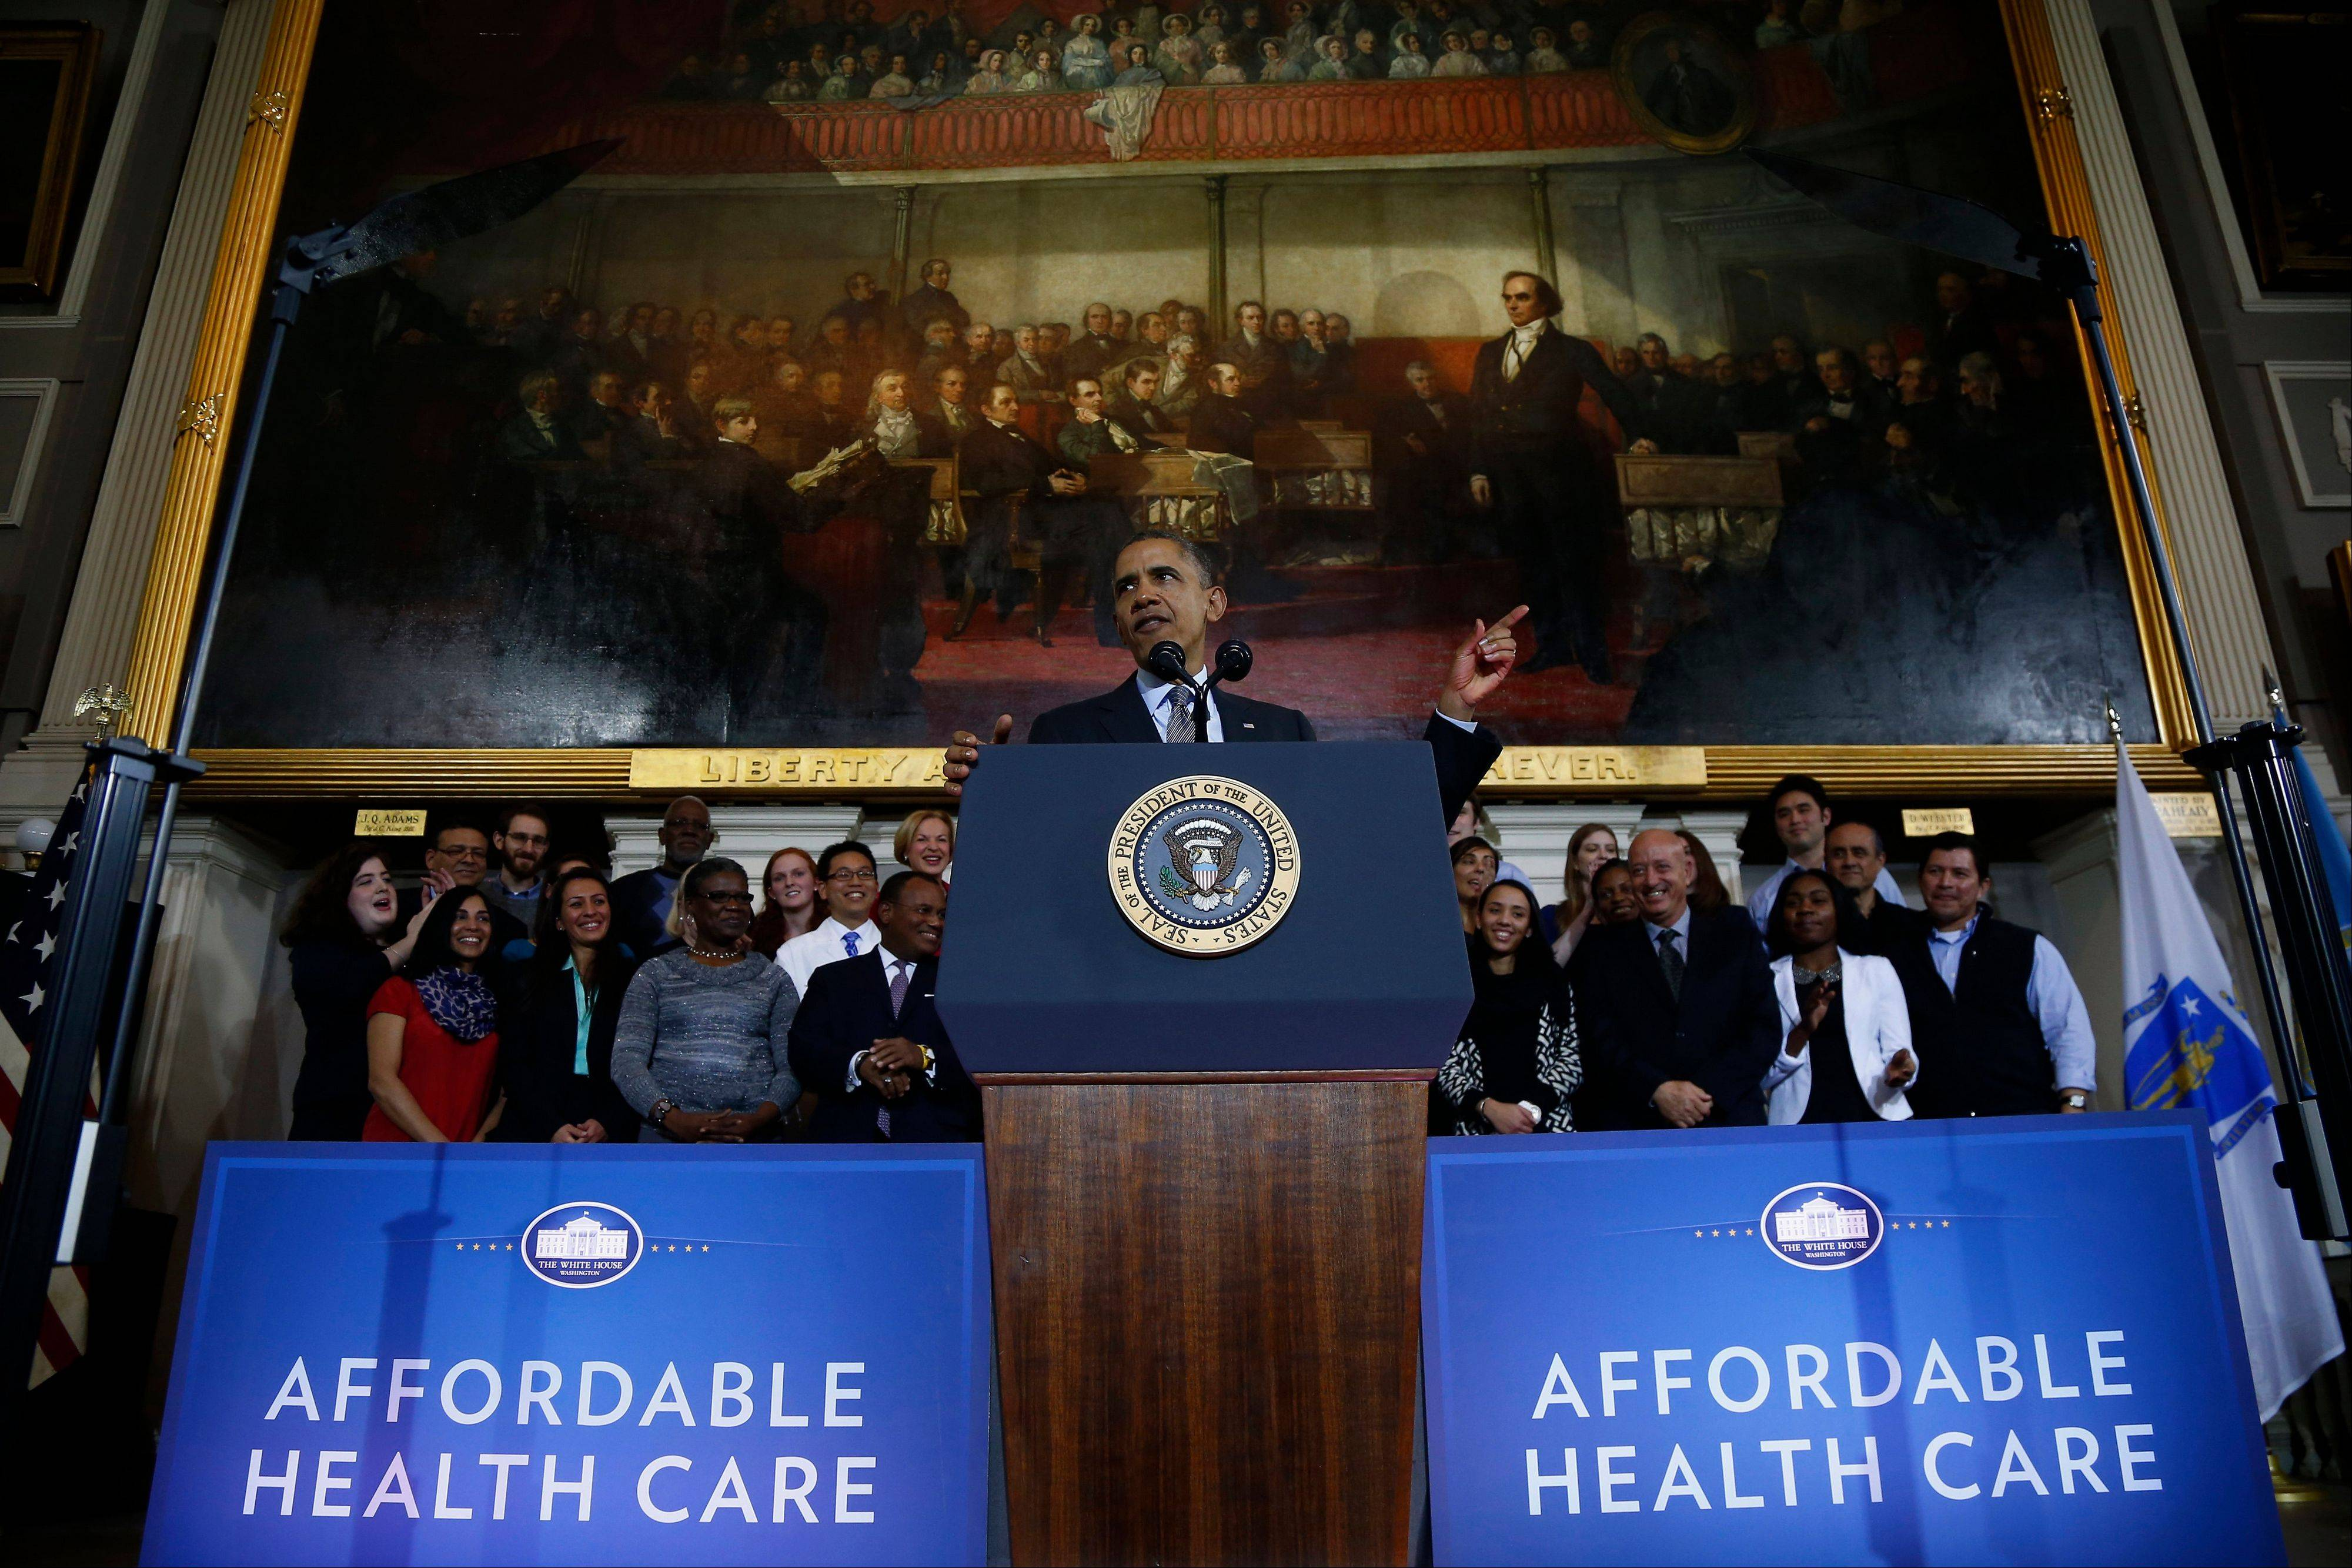 President Barack Obama speaks at Boston's historic Faneuil Hall about the federal health care law last week. Now is when Americans start figuring out that President Barack Obama's health care law goes beyond political talk, and really does affect them and people they know.